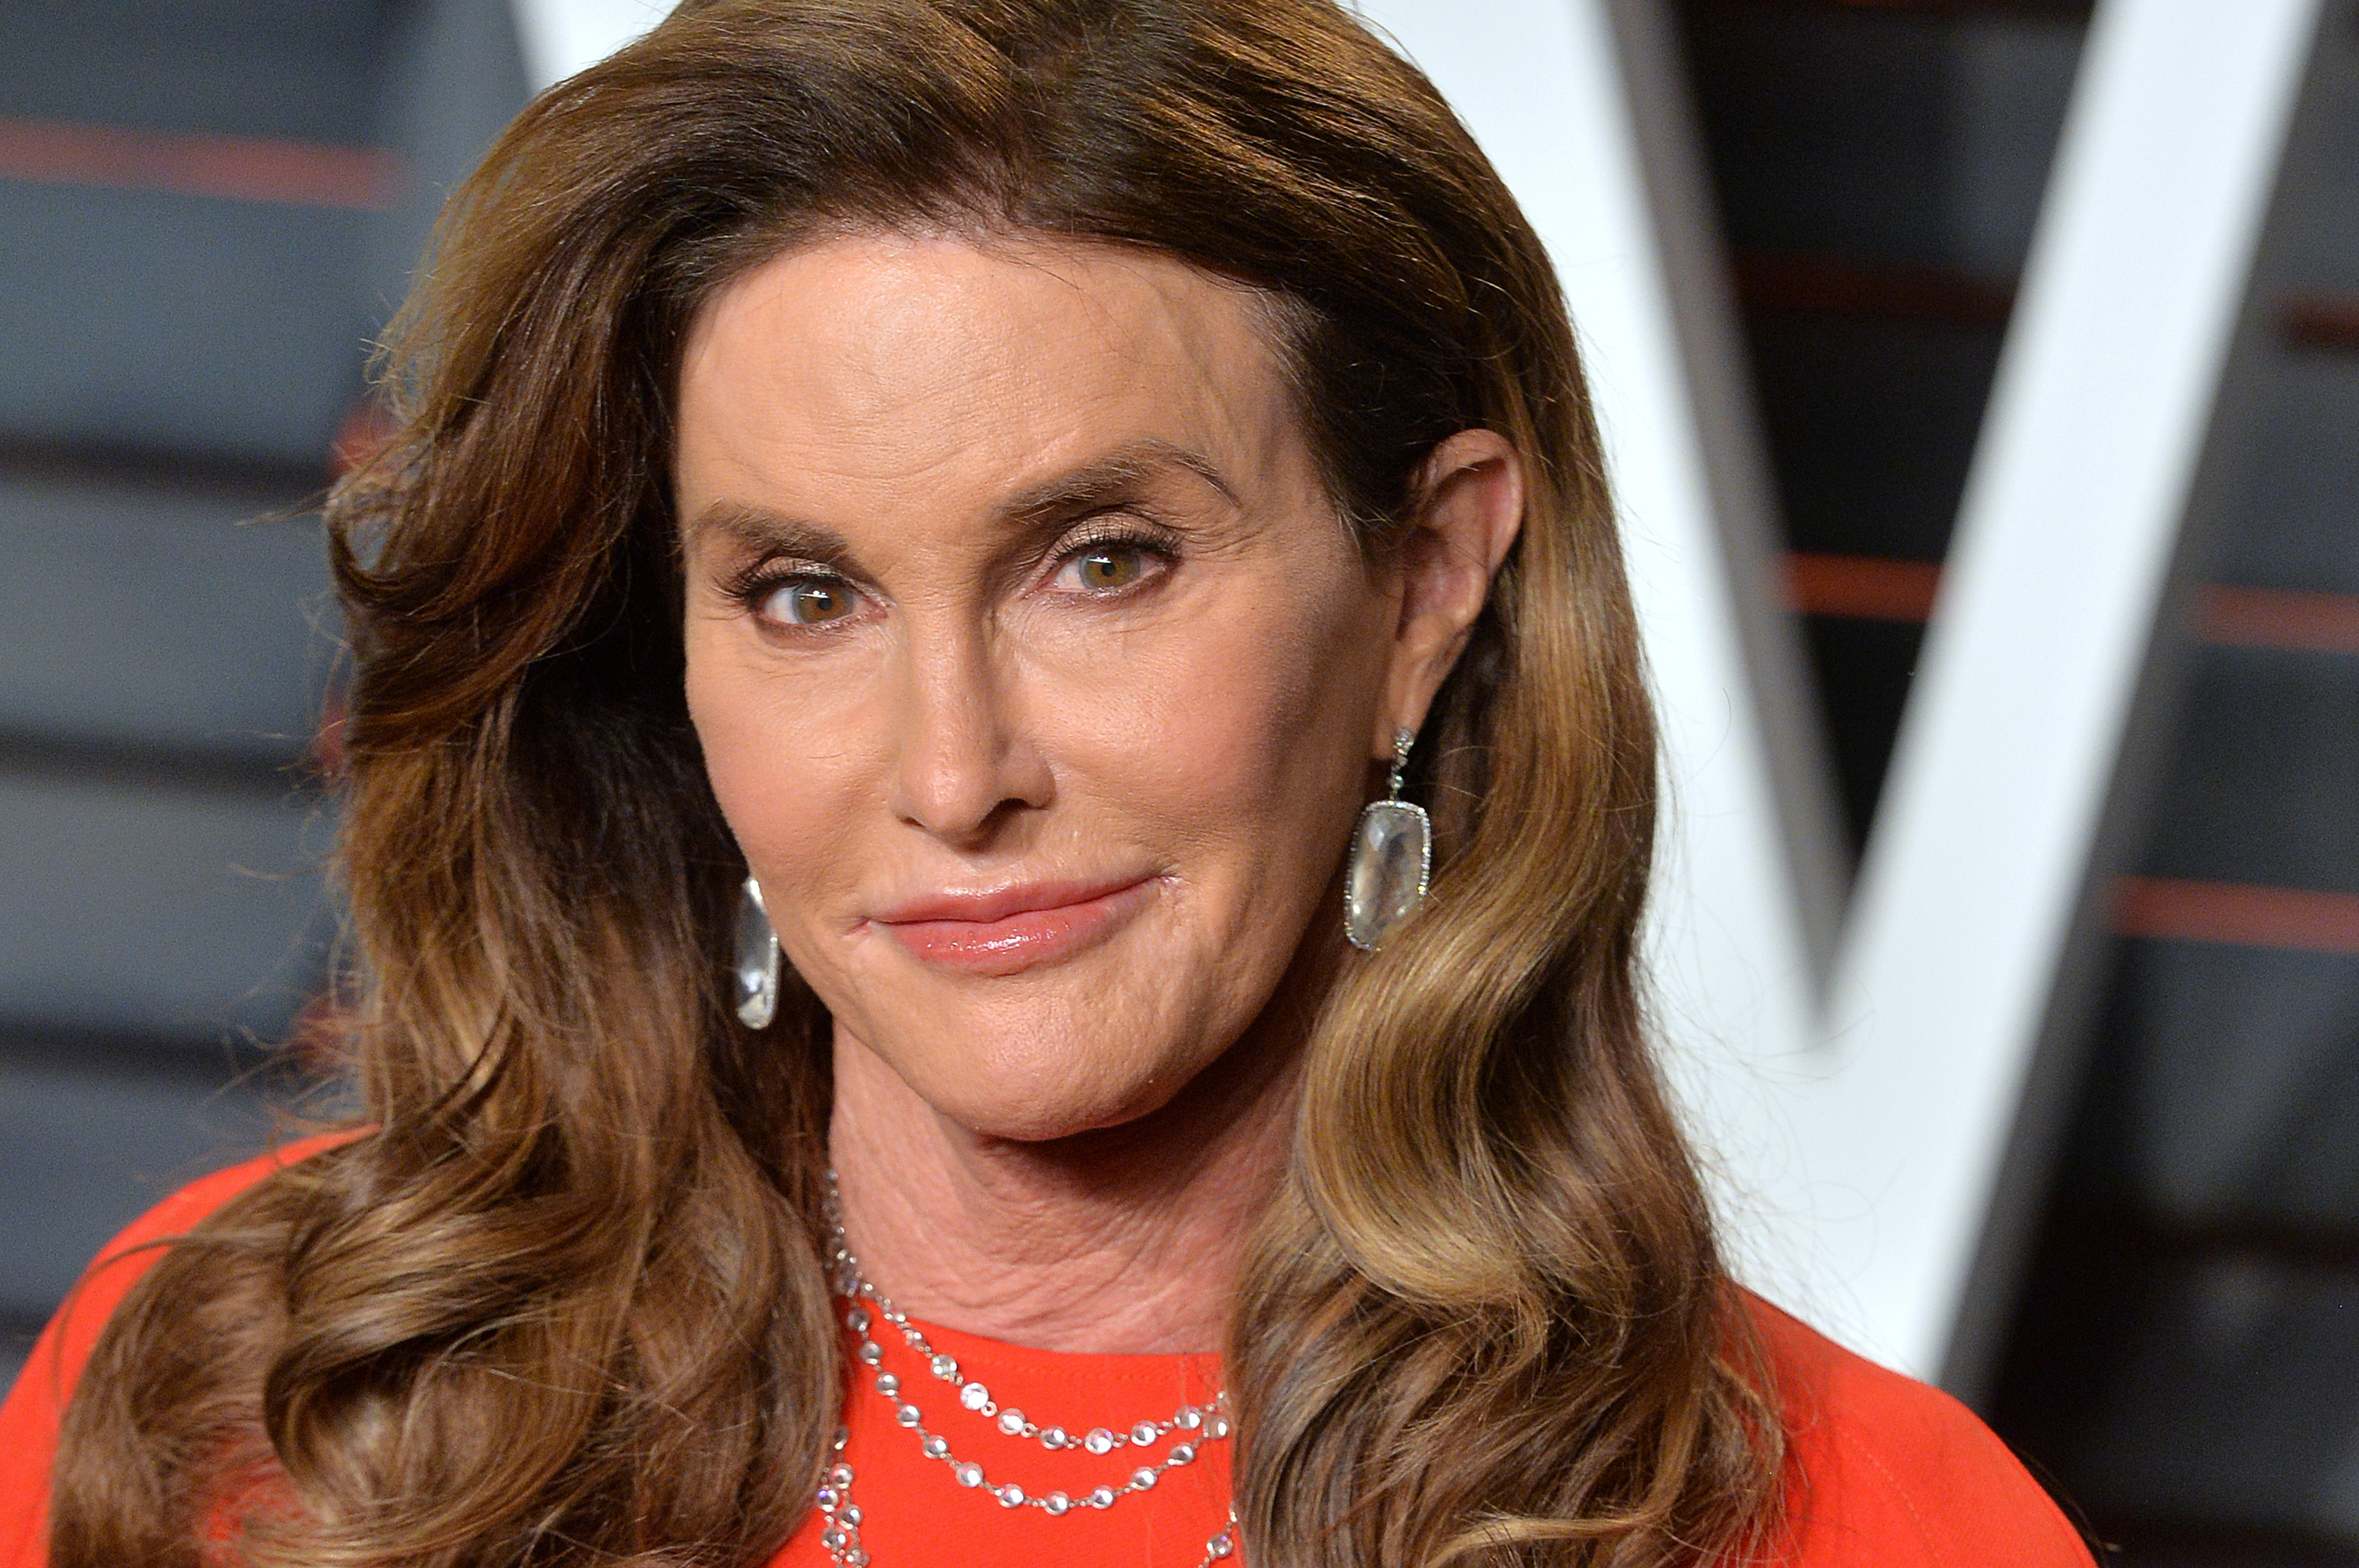 Caitlyn Jenner attends the 2016 Vanity Fair Oscar Party hosted By Graydon Carter at Wallis Annenberg Center for the Performing Arts on Feb. 28, 2016 in Beverly Hills, California.